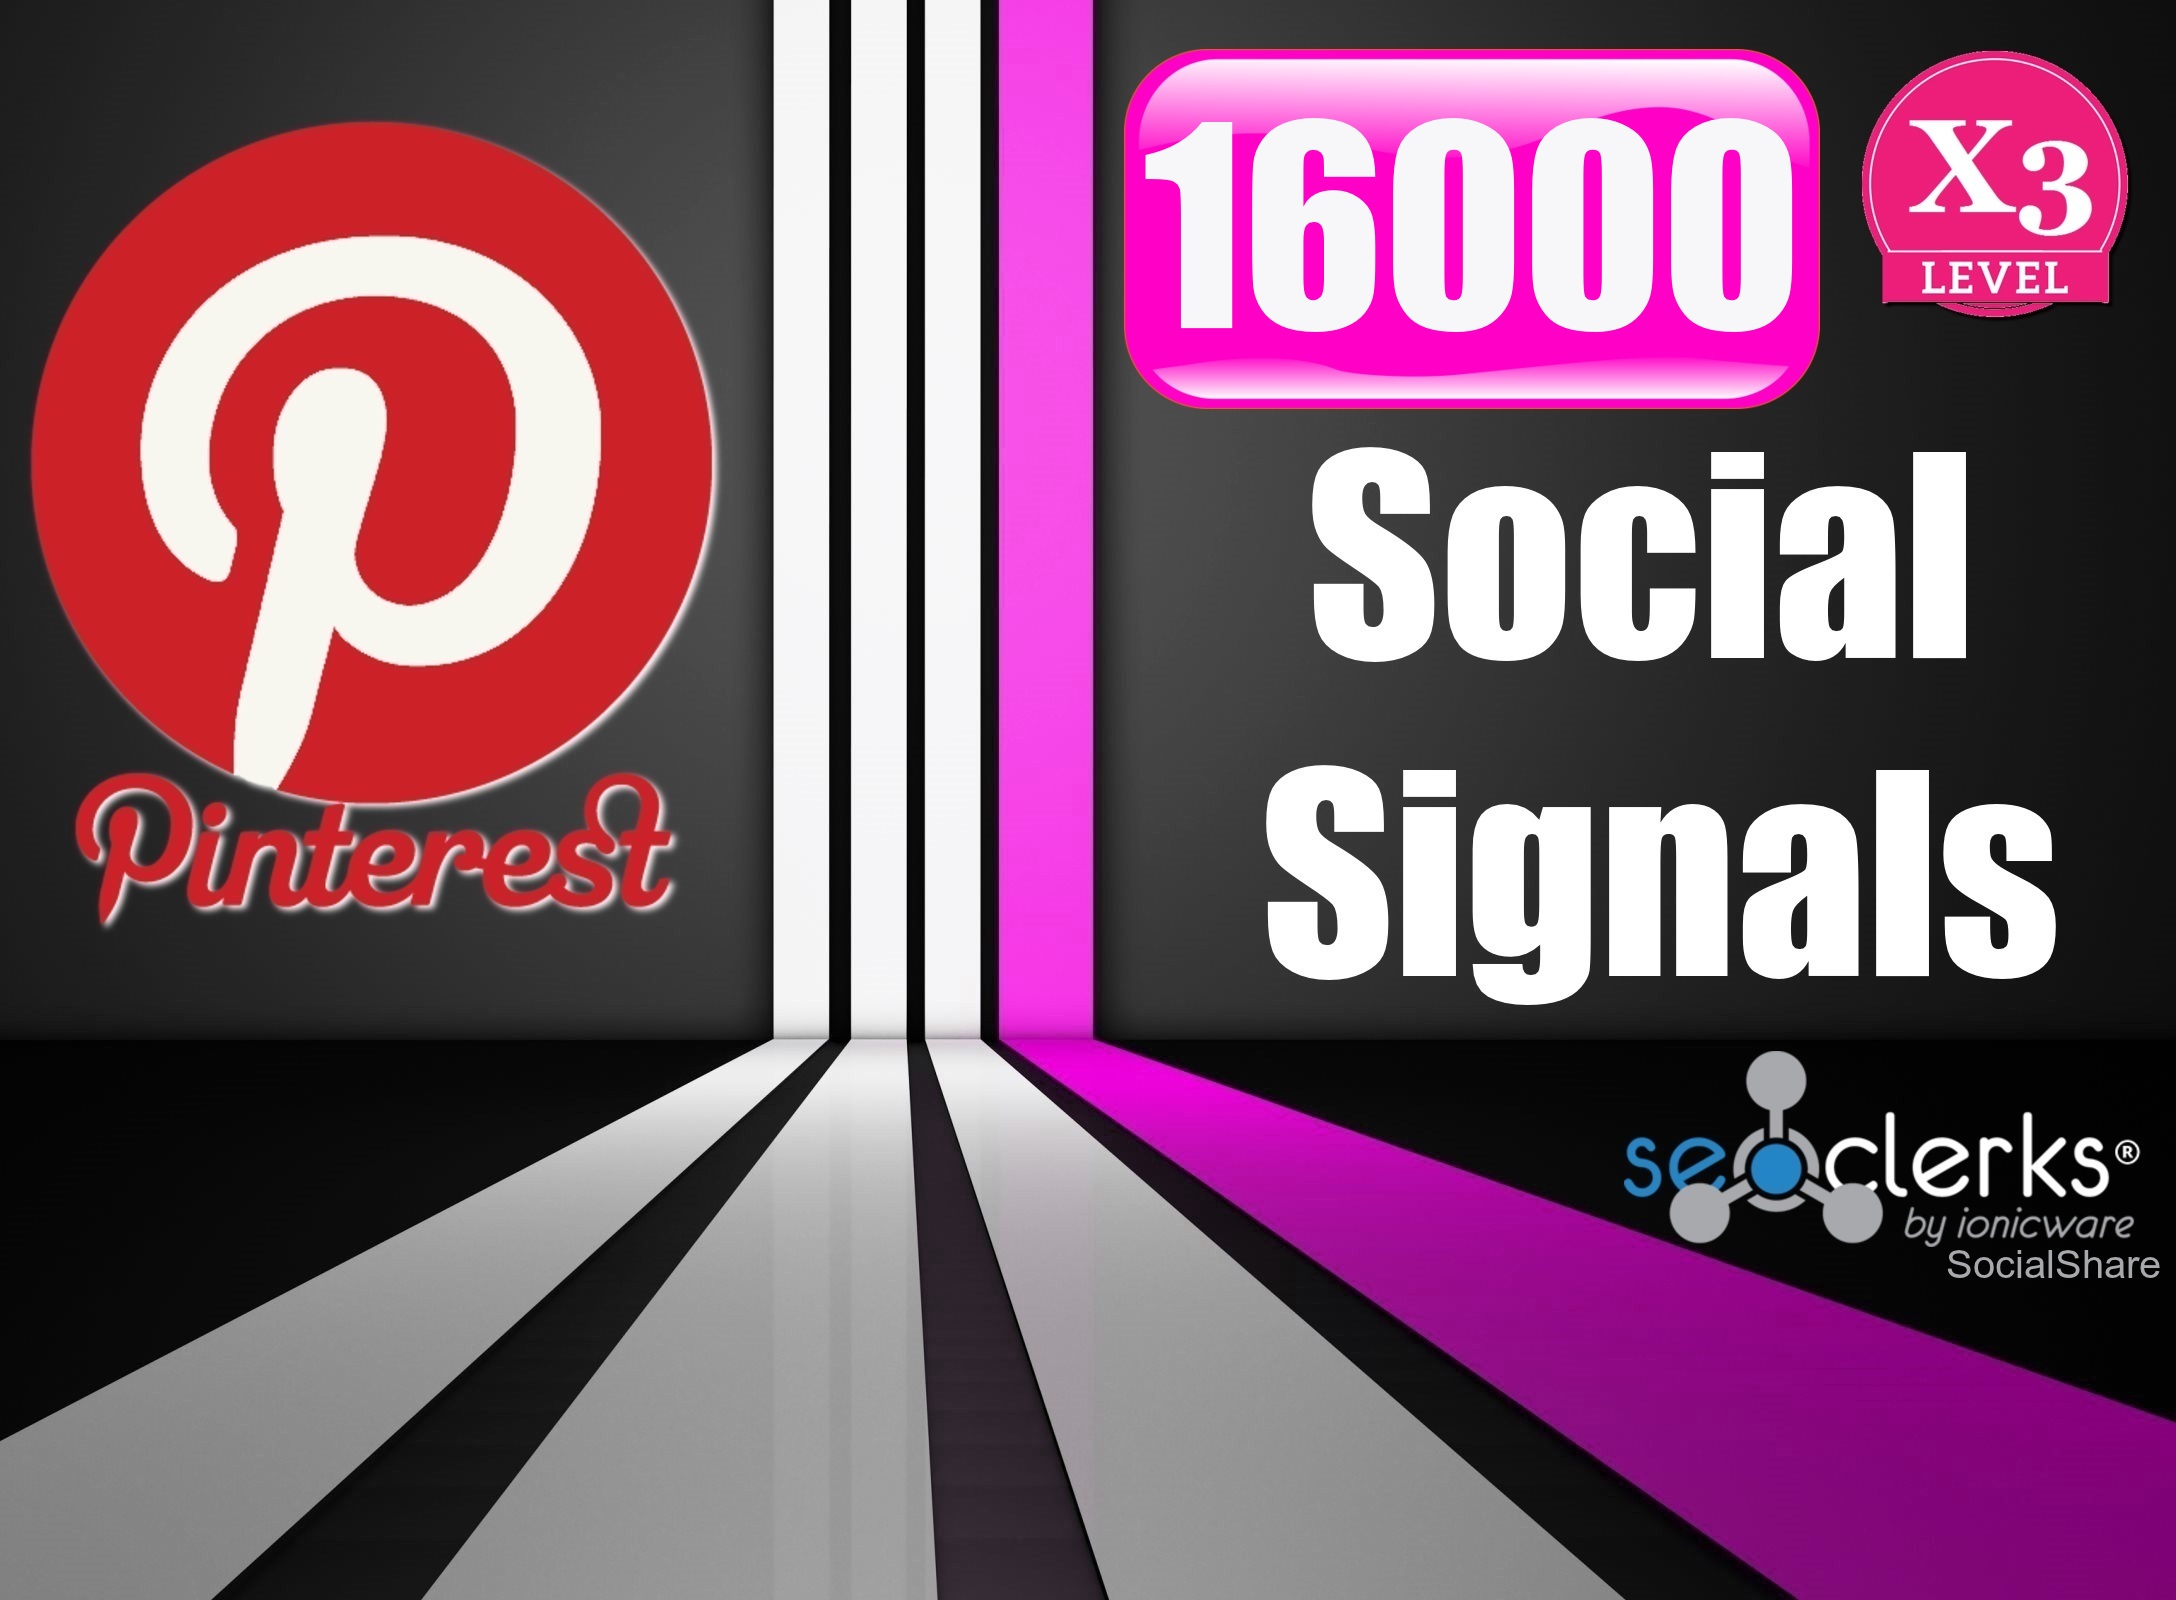 12-300-Mixed-Real-Permanent-PR9-Social-Signals-Share-For-Affiliate-Marketing-amp-Business-Promotion-Help